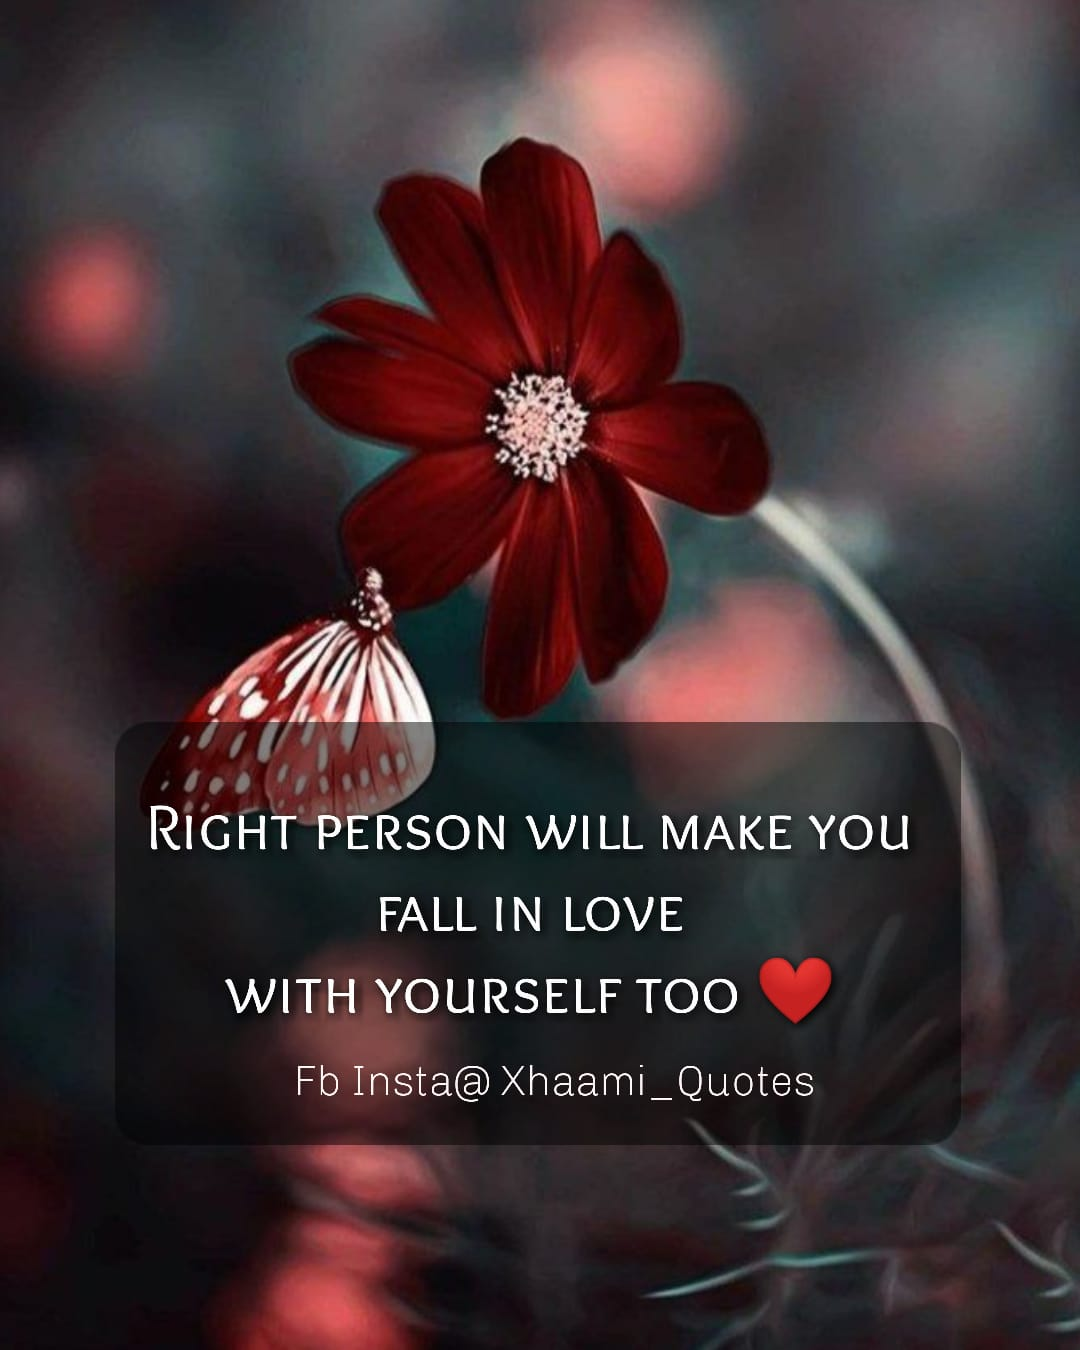 Right person will make you fall in love with yourself Quote with image